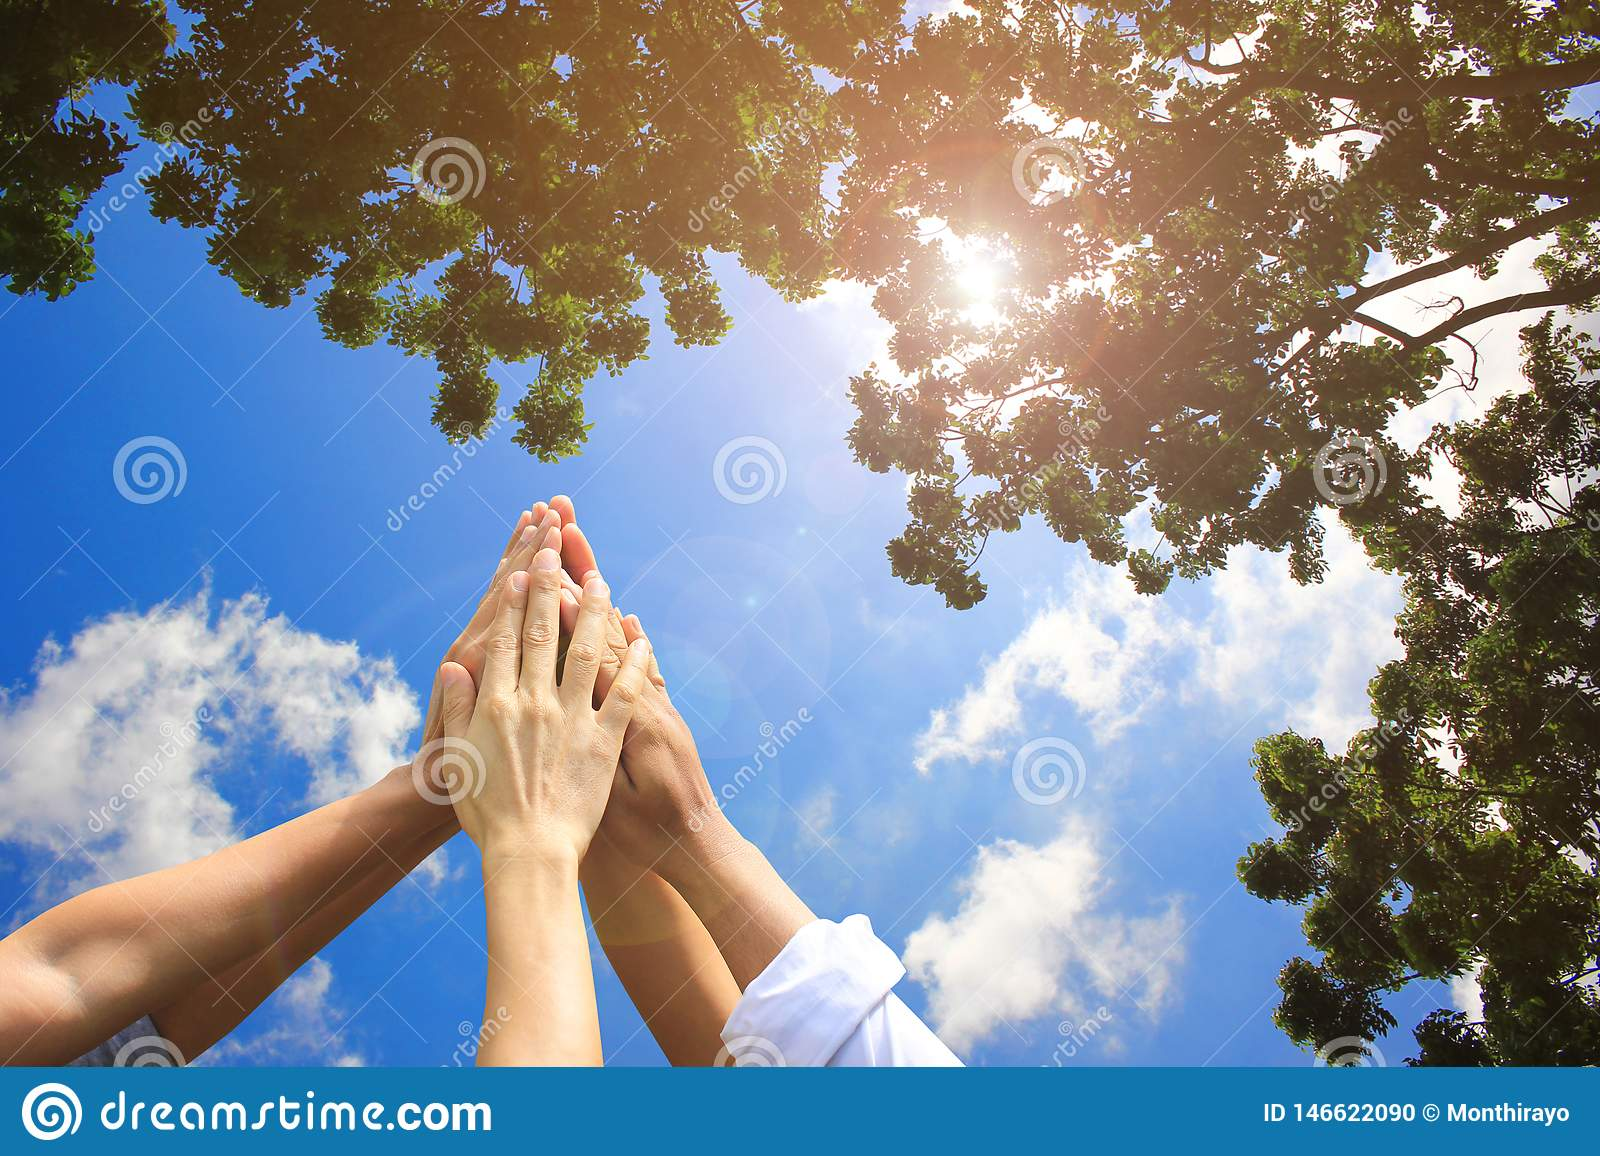 Meeting teamwork concept,Friendship,Group people with stack of hands showing unity on natural green and blue sky background